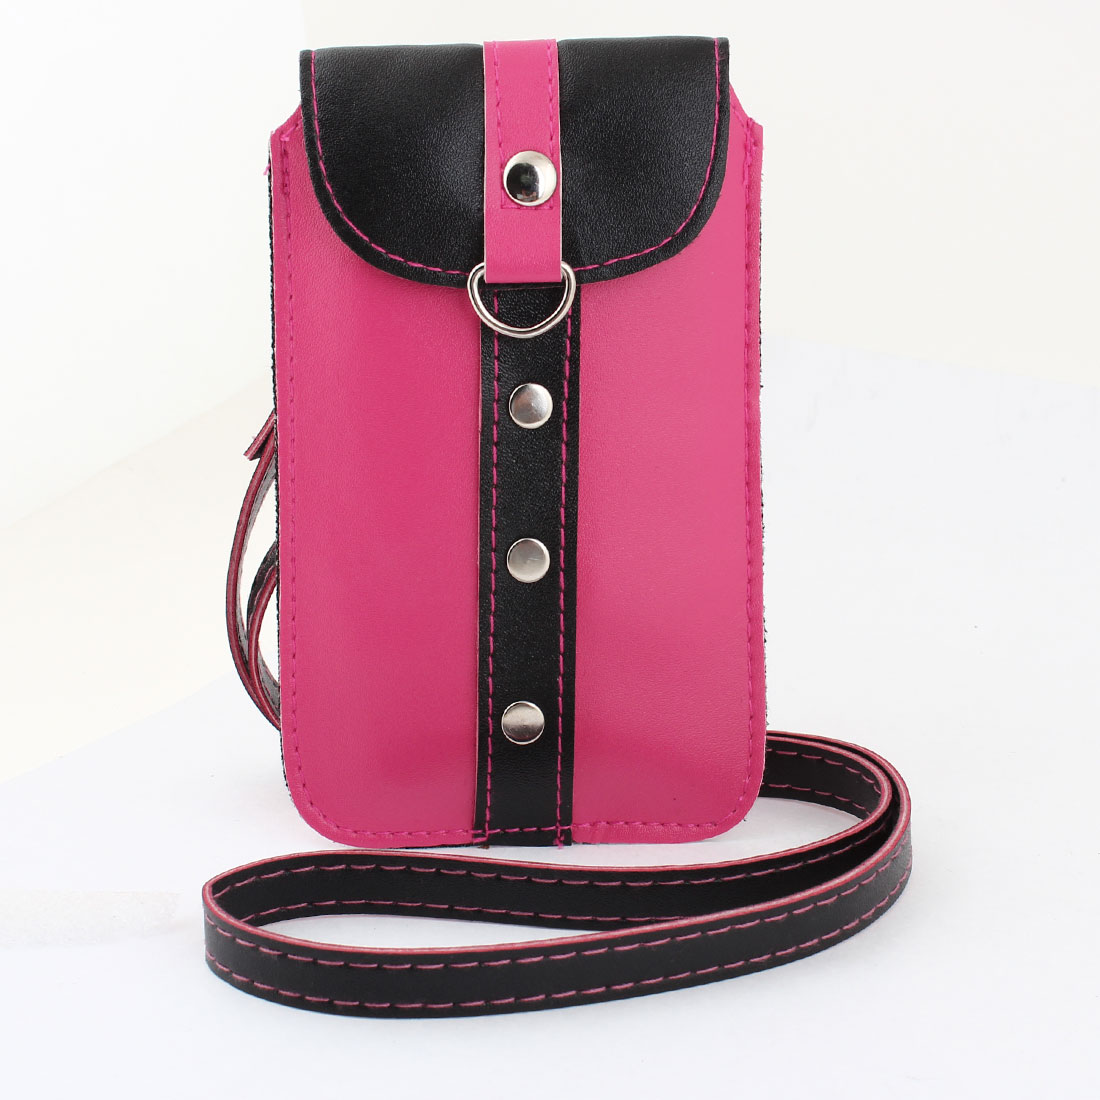 Press Button Closure Fuchsia Black Faux Leather Mobile Phone Bag w Neck Strap